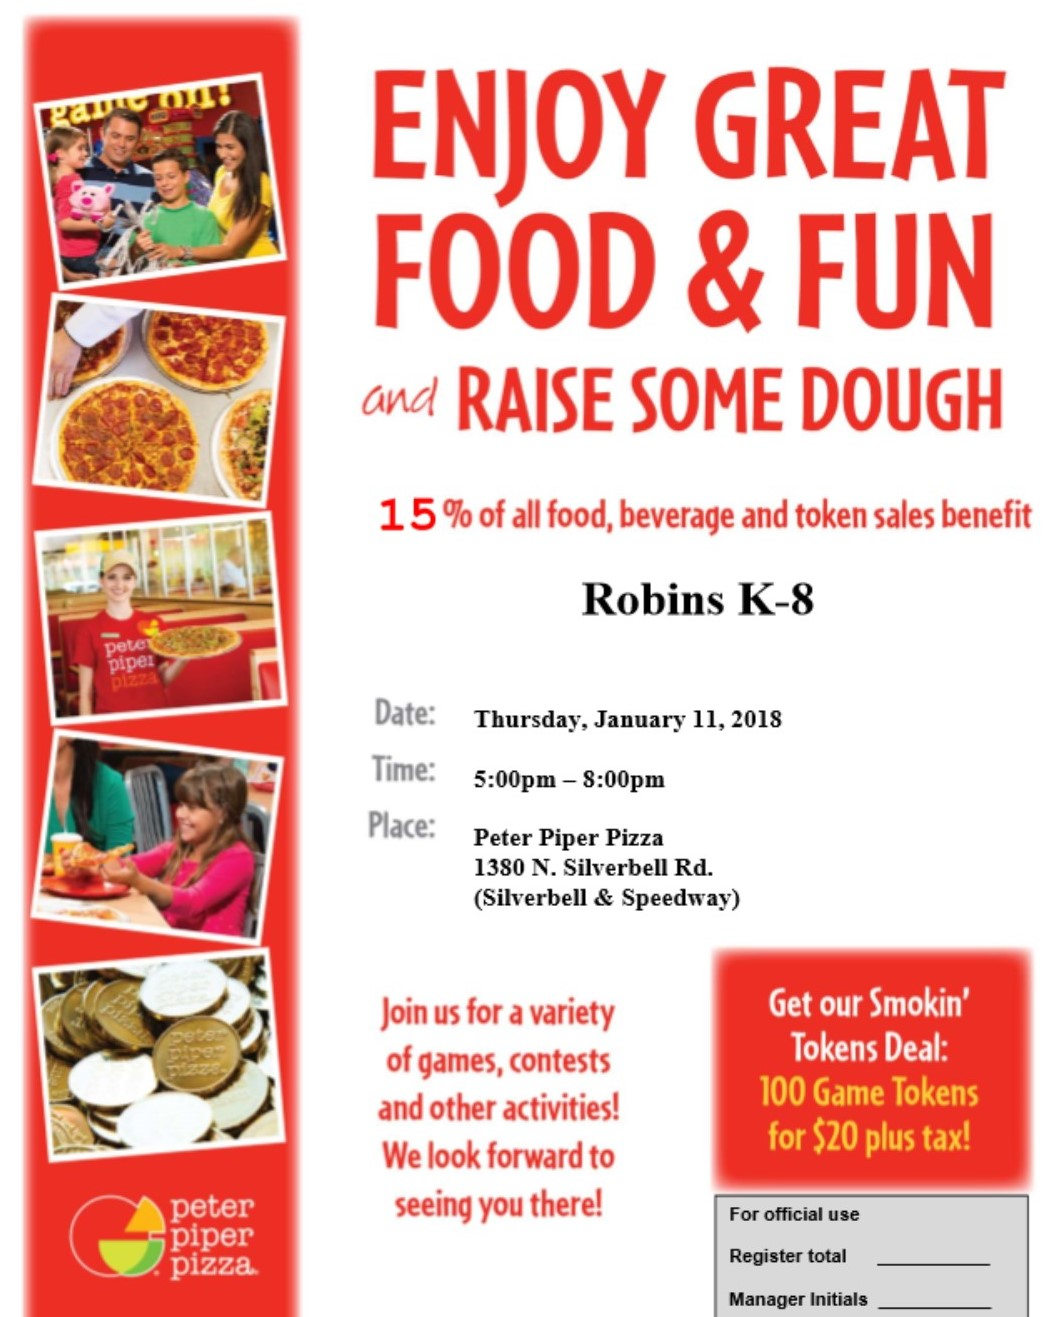 Enjoy Great food & Fun and raise some dough 15 percent of all food beverage and token sales benefit Robins K-8 Date Thursday January 11 2018 Time 5PM-8PM Pleace Peter Piper Pizza 1380 N. Silverbell Rd. (Silverbell & Speedway) Join us for a variety of games, contest, and other activiites! We look forwated to seeing you there! Get our smokin tokens deal 100 game tokens for $20 plus tax.